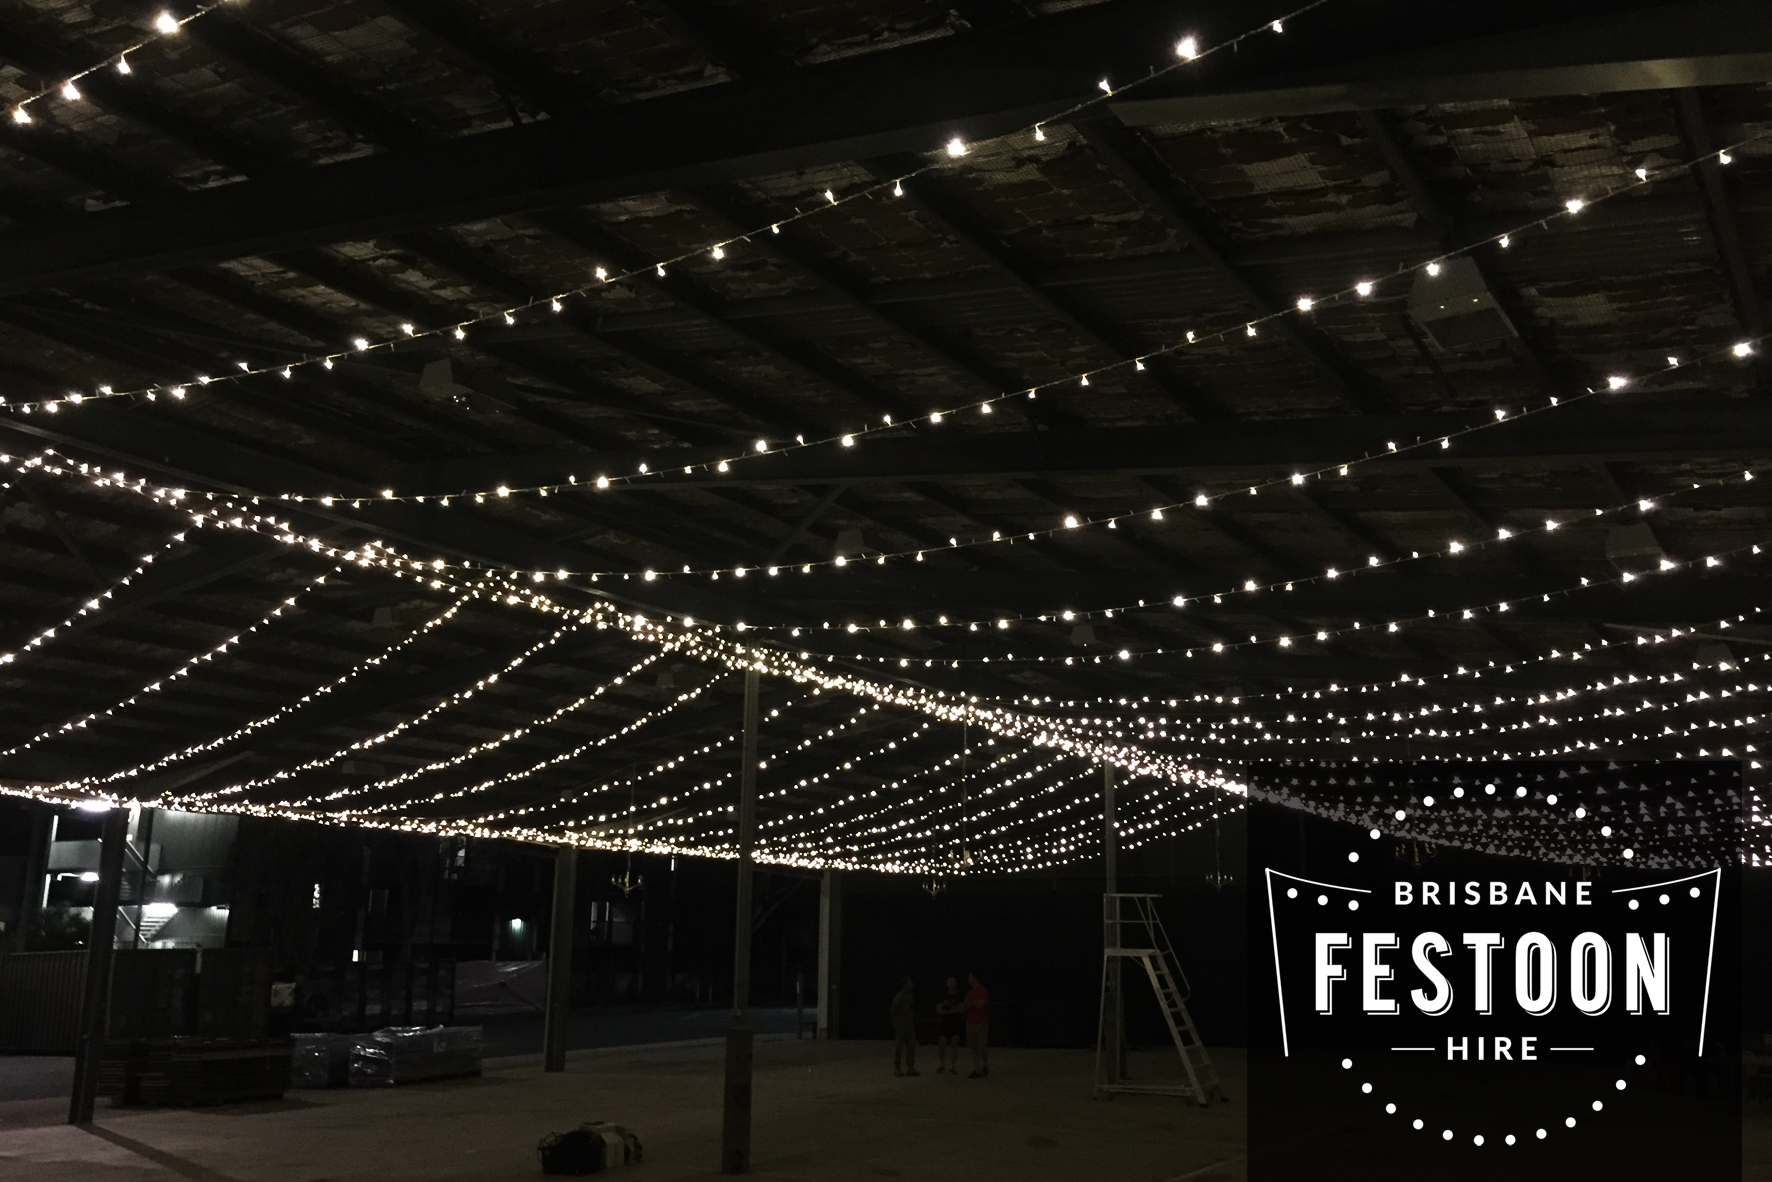 Brisbane Festoon Hire - Enoggera 1.jpg